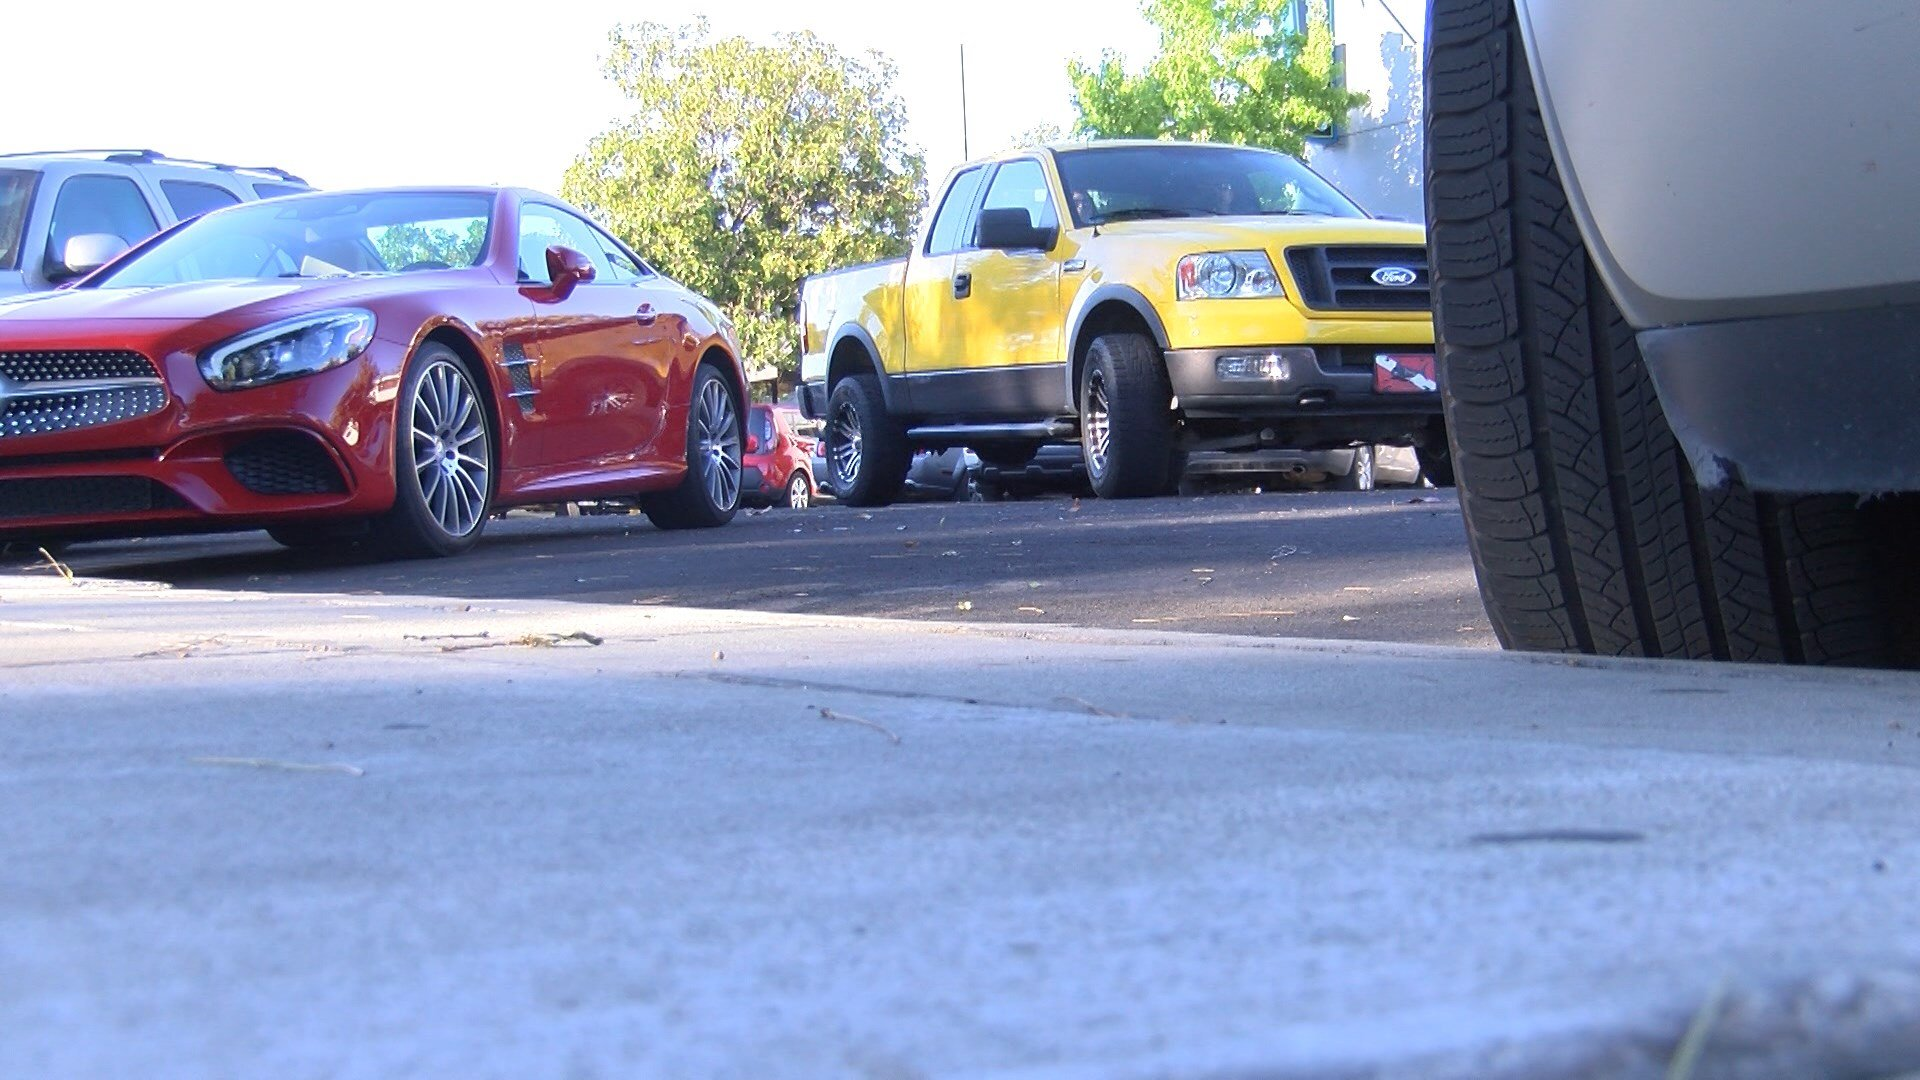 Paso Robles City Council discusses a Downtown Parking Action plan to free up more spaces for visitors. (KSBY photo)